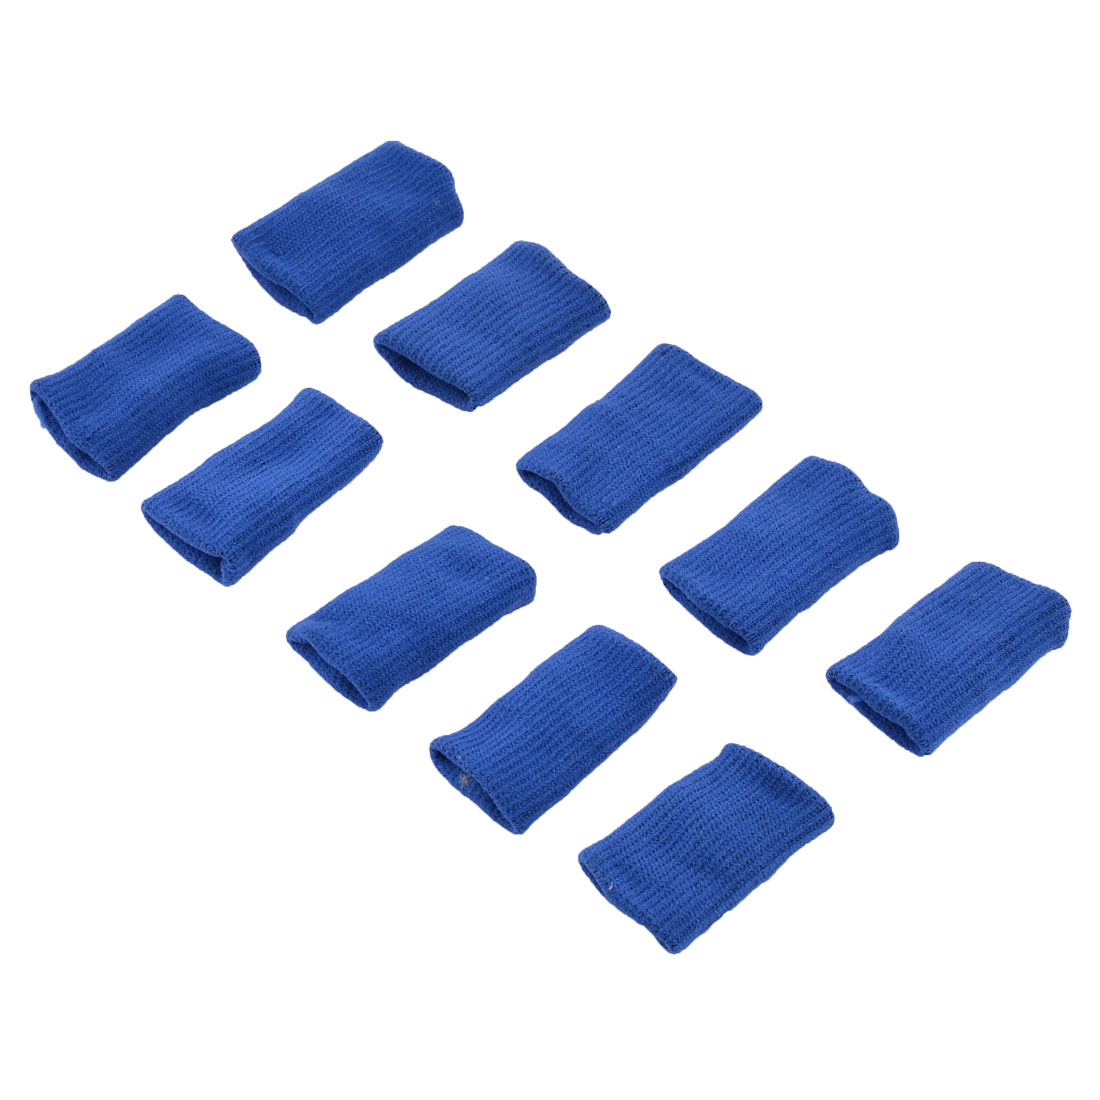 Sports Stretchy Finger Sleeve Bandage Support Arthrle Protector Blue 10pcs